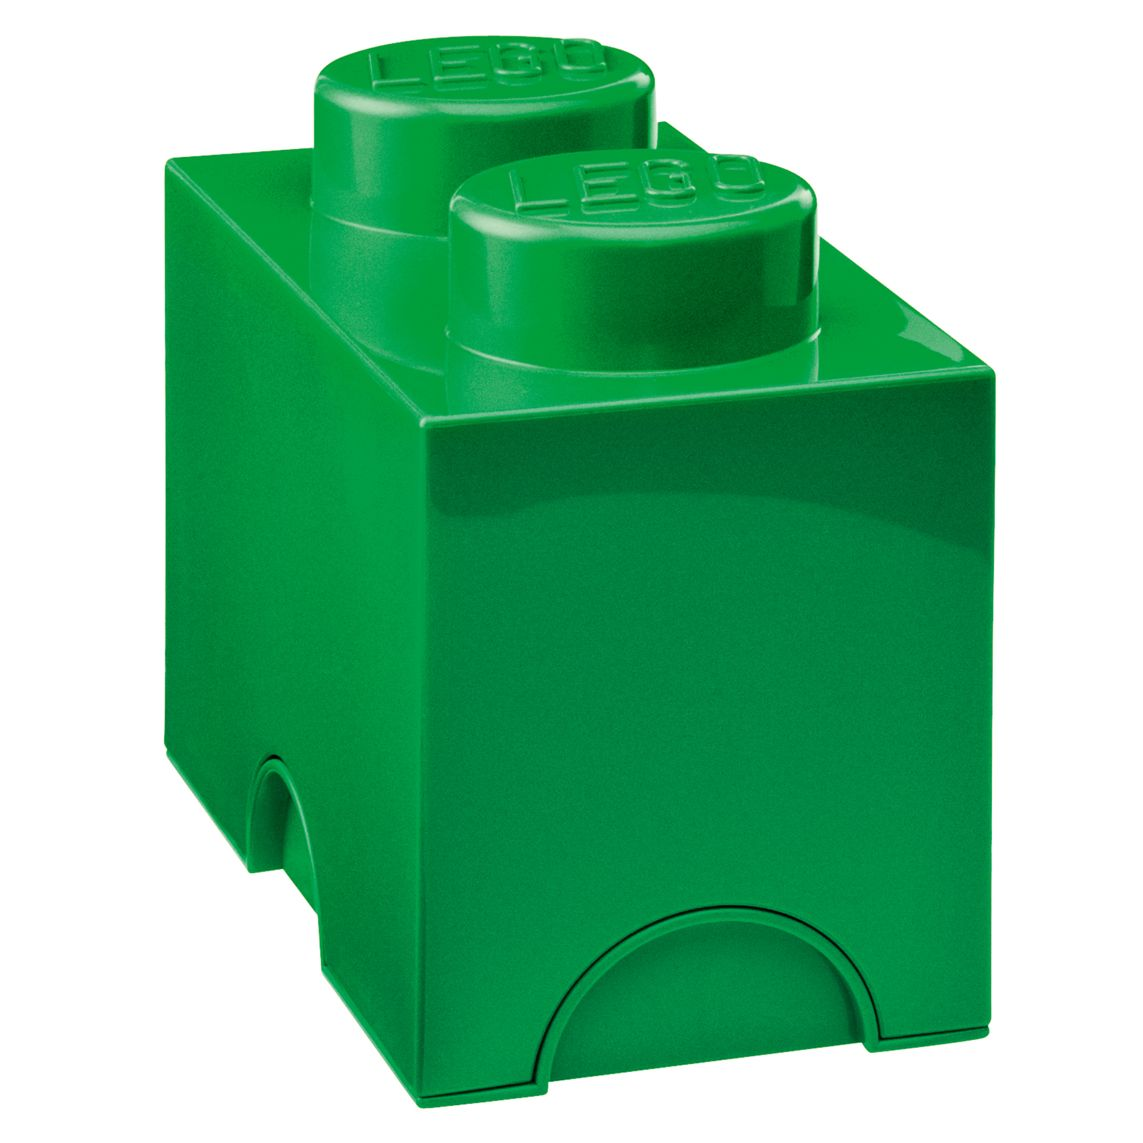 Lego 2 Stud Storage Brick, Green